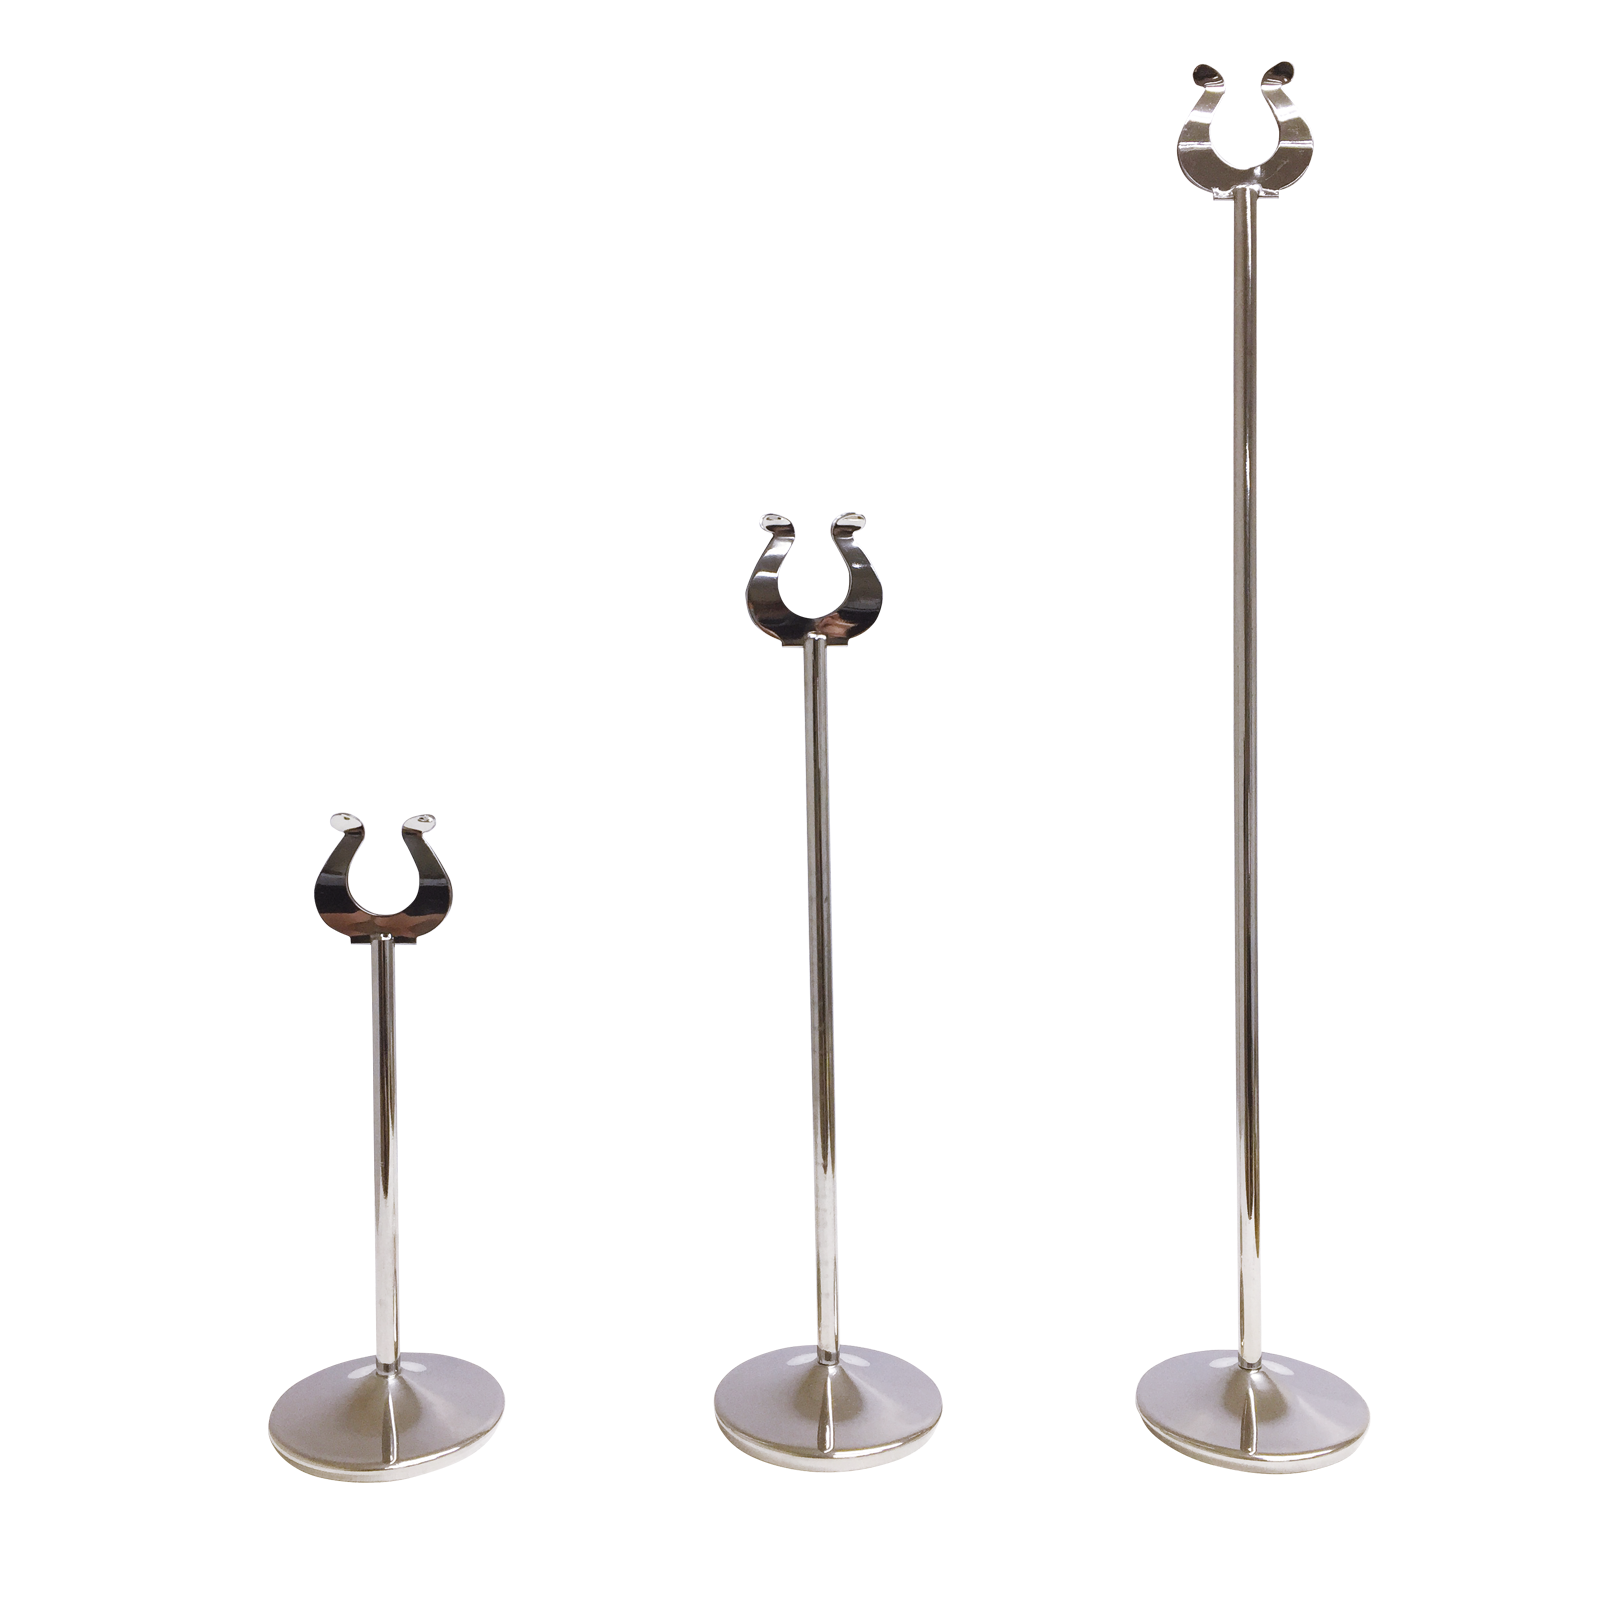 Stainless Steel Table Number Stands Wedding Table Number Stands